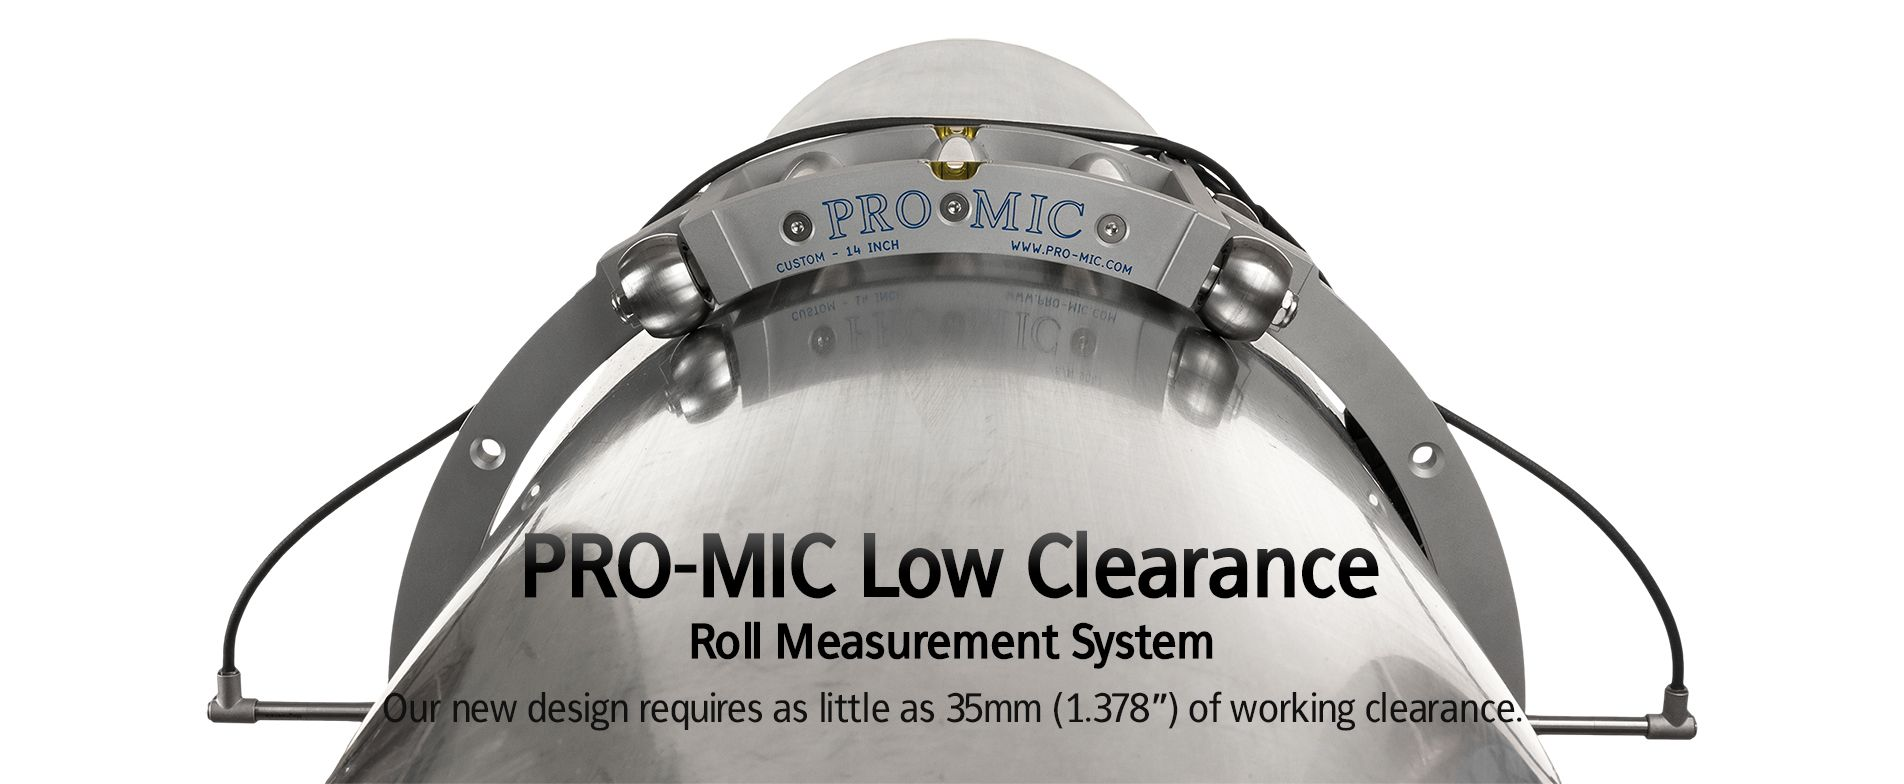 PRO-MIC Low Clearance